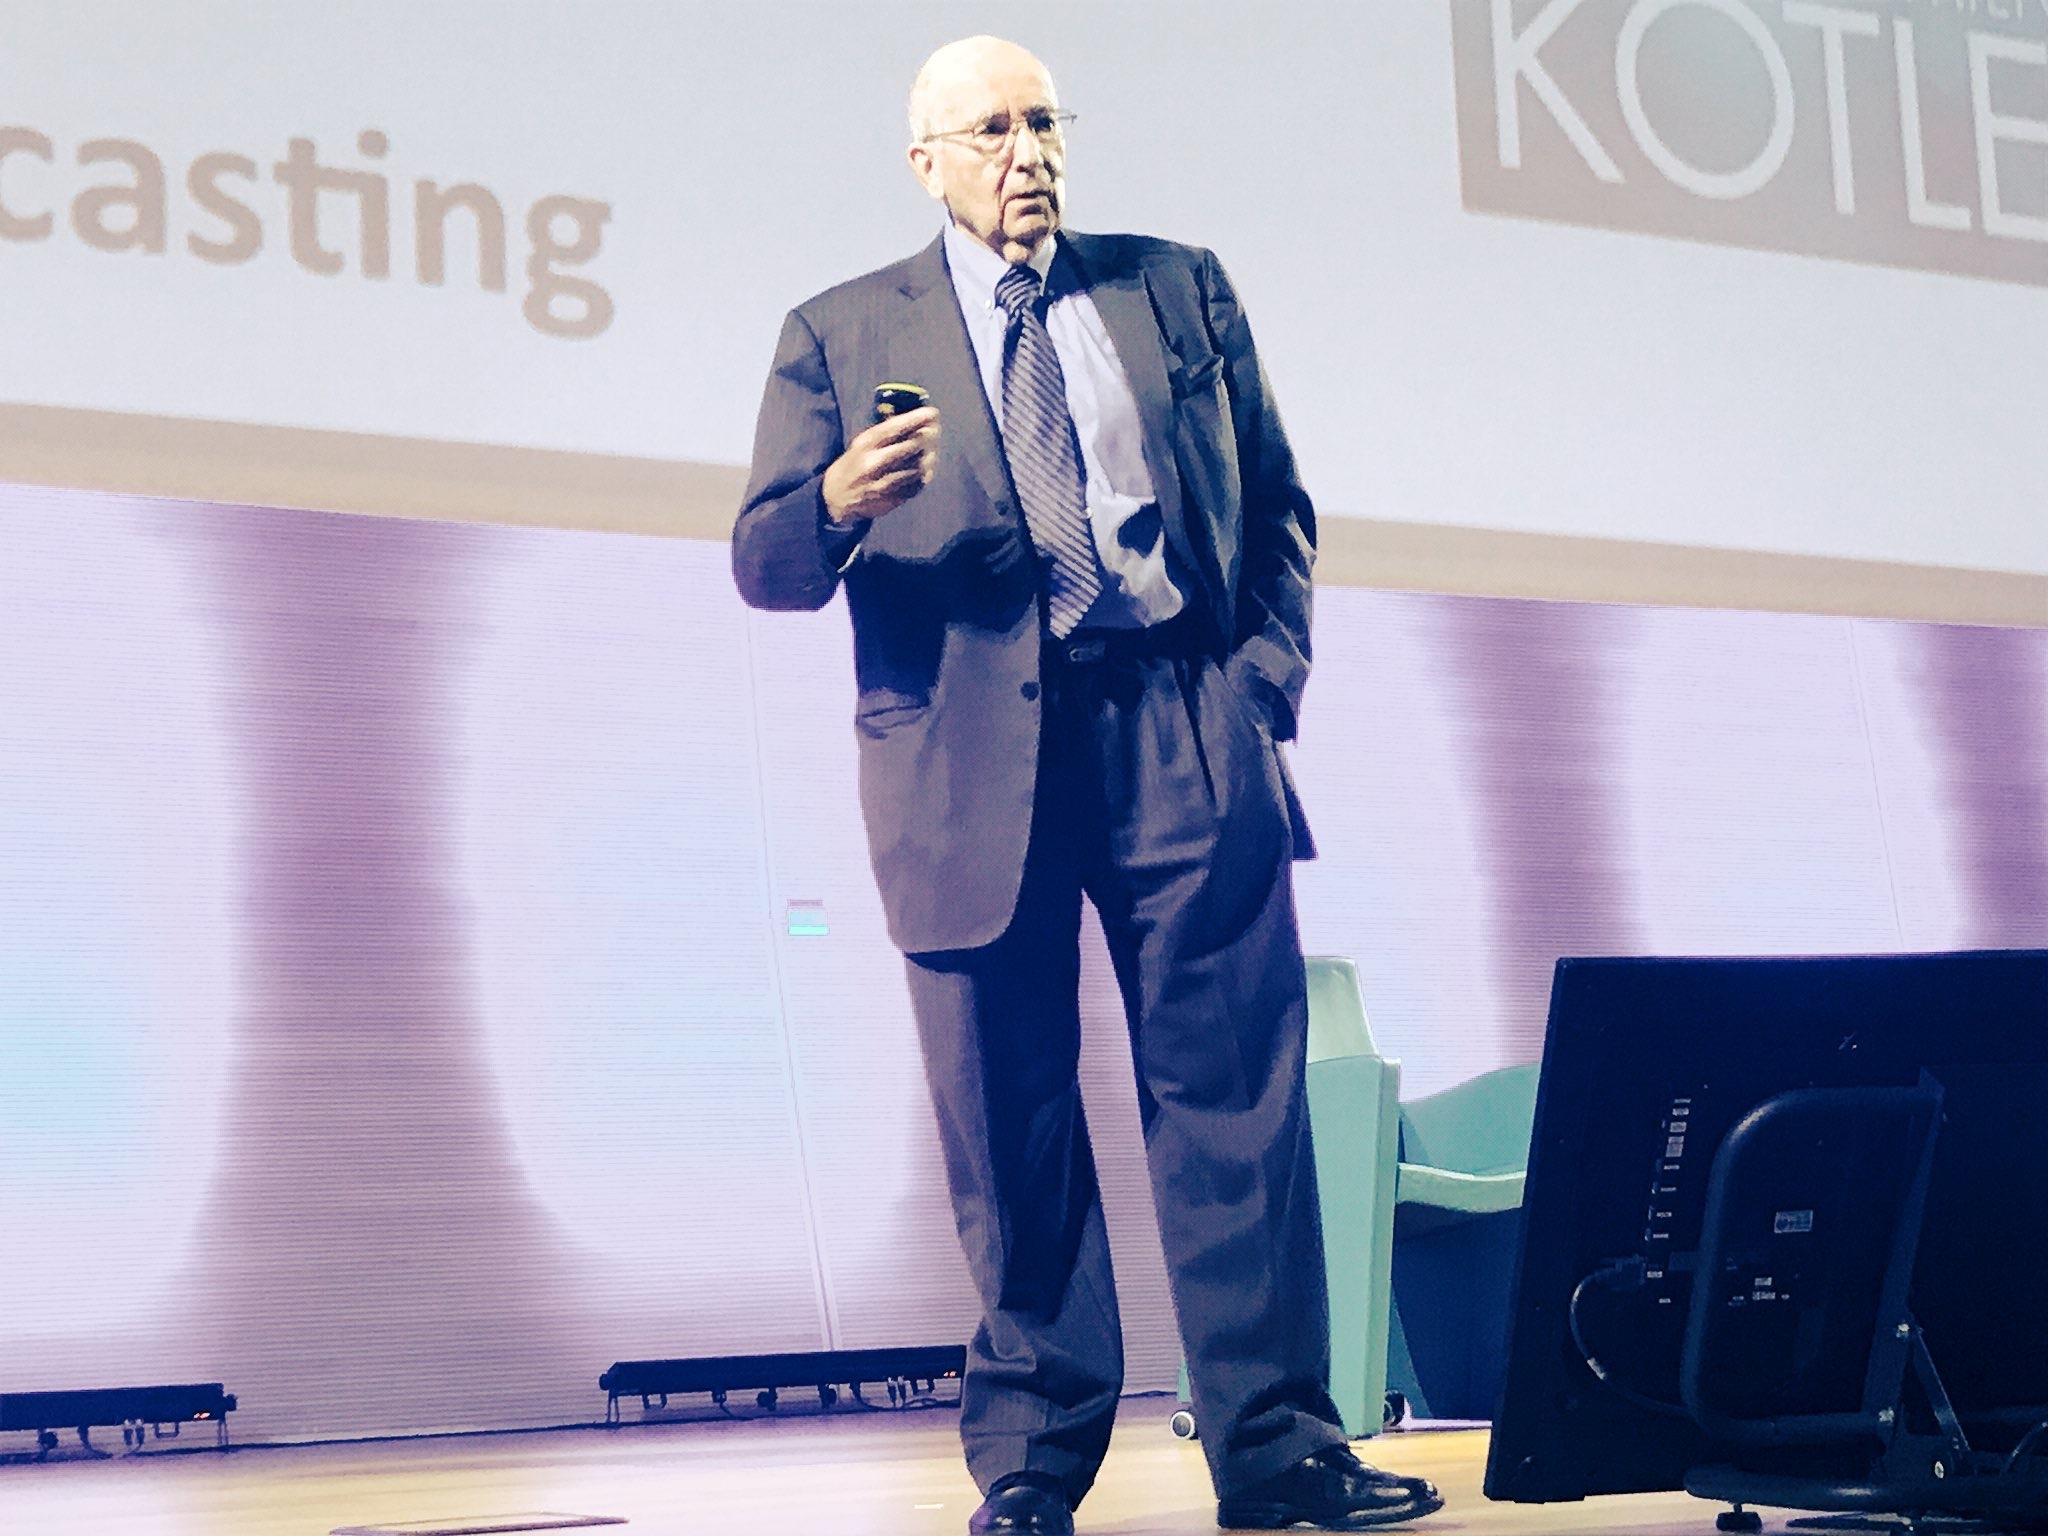 Il guru mondiale del marketing, Philip Kotler